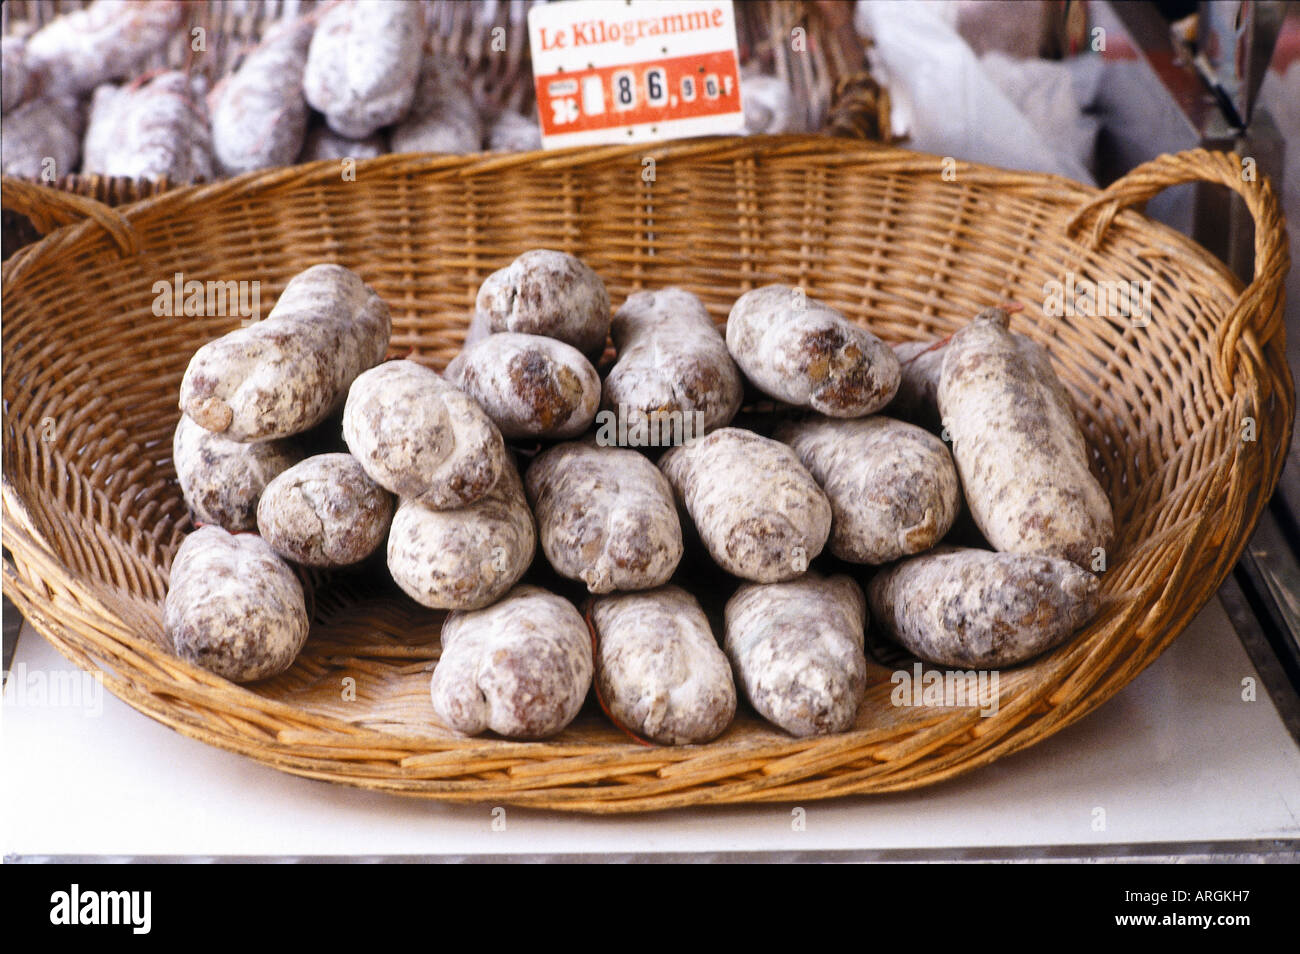 A basket of dry sausages with their price tag per kilogram in the town of Anzy le Duc - Stock Image